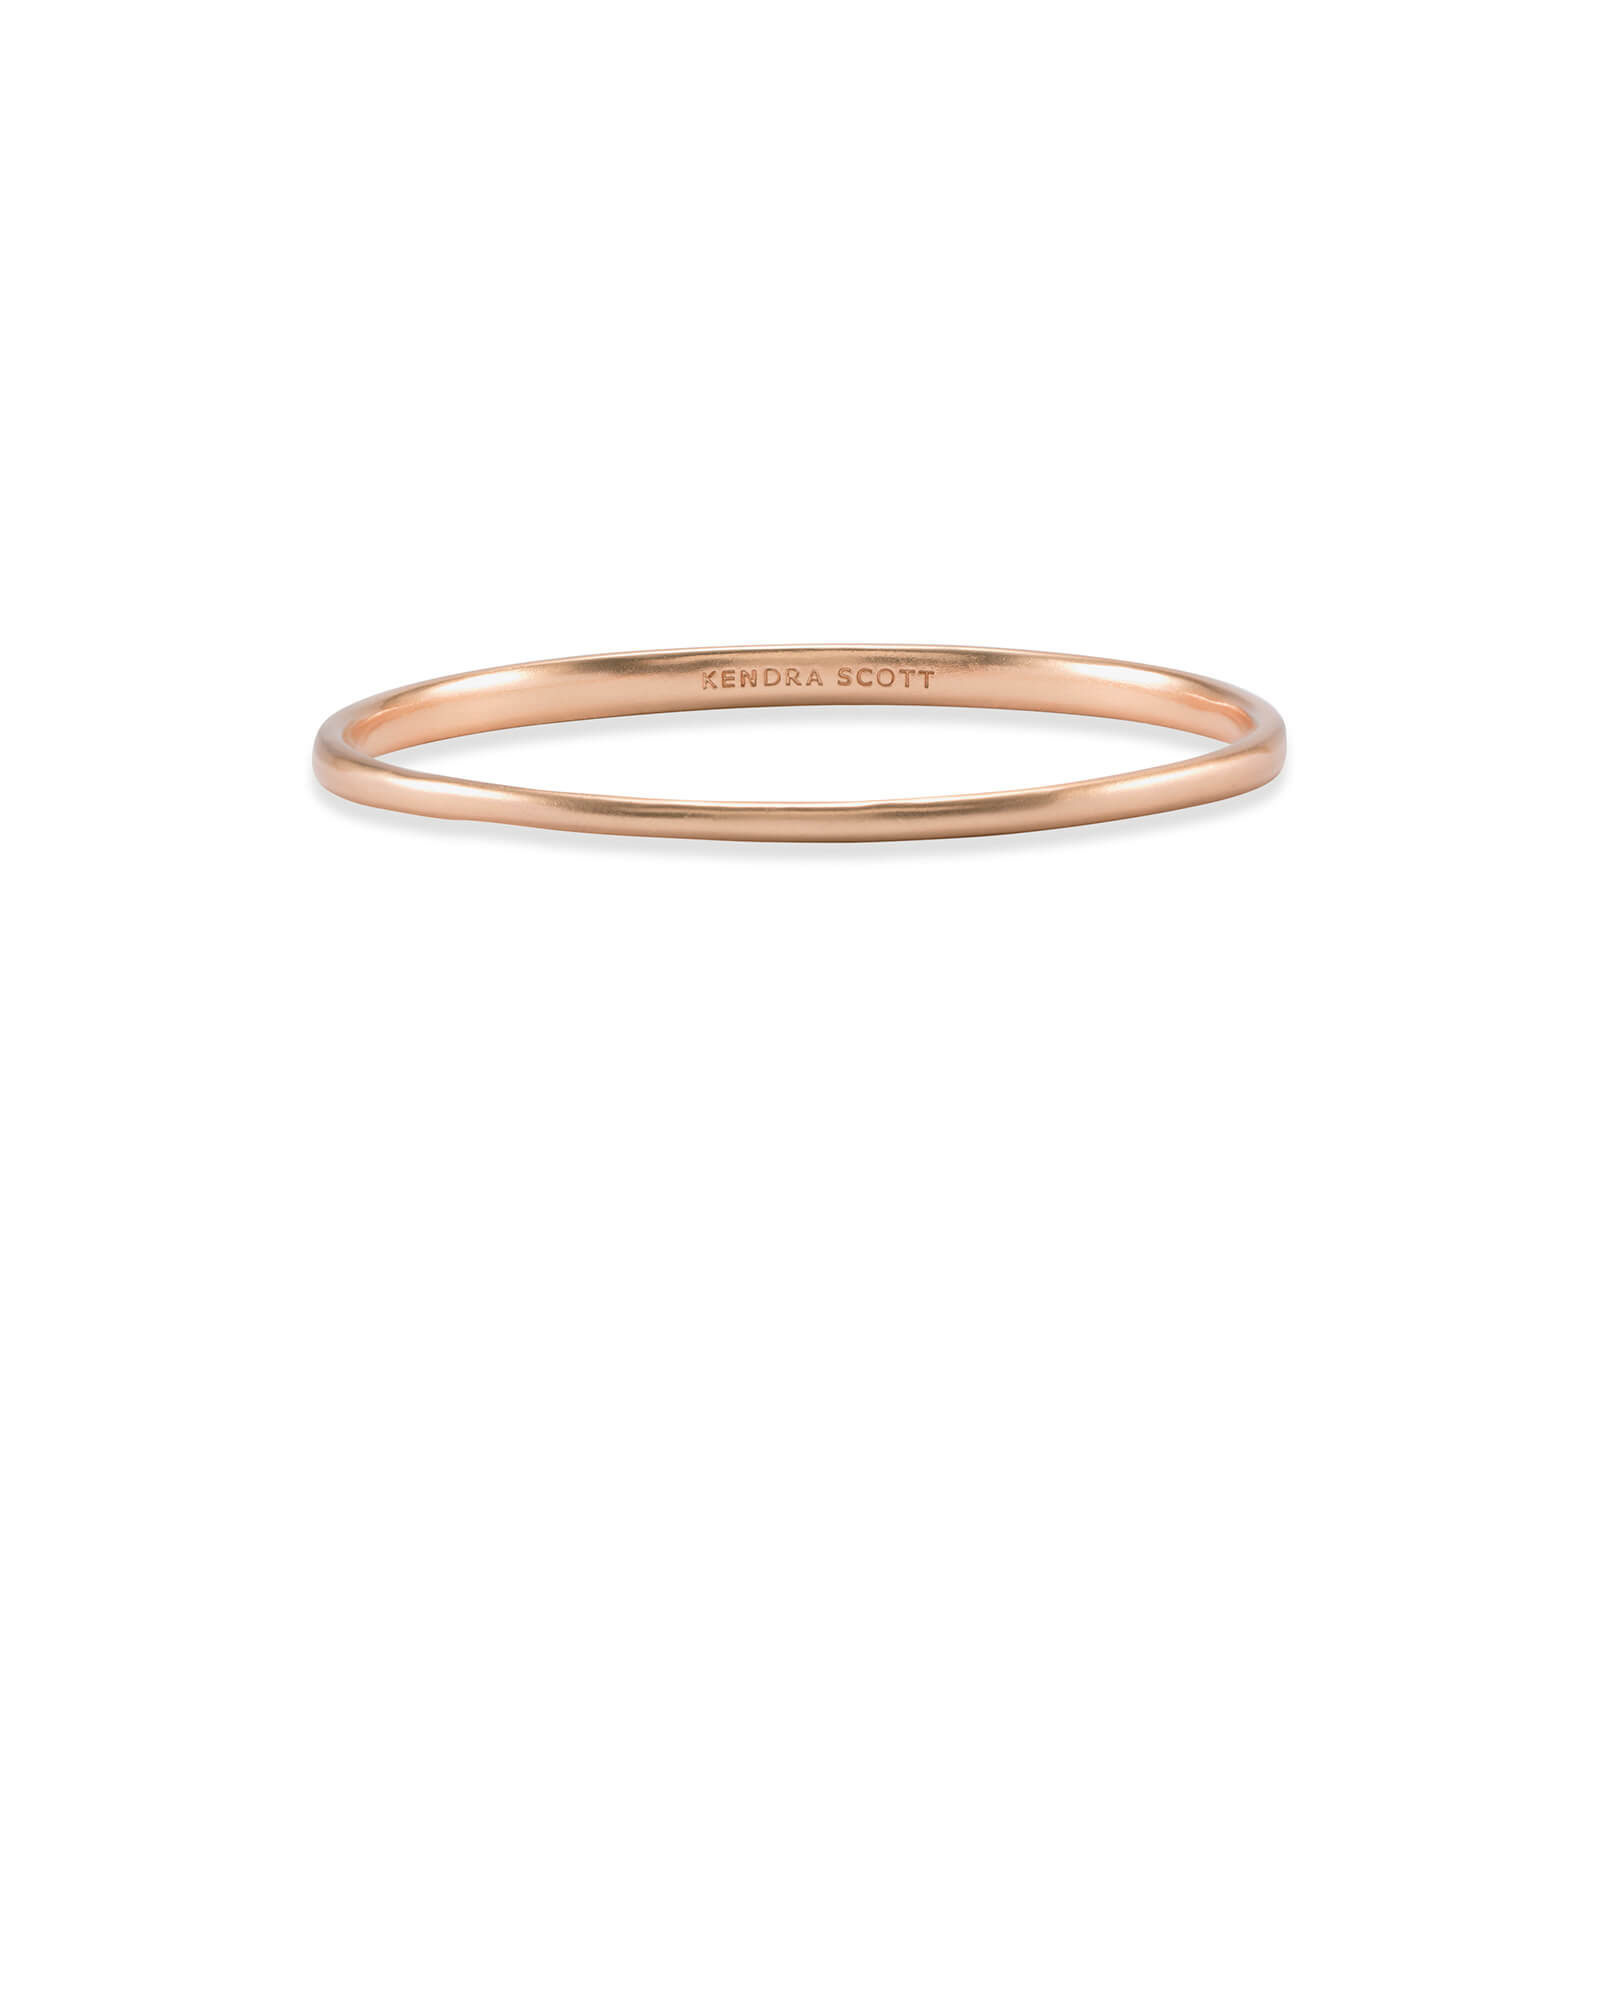 Graduated Bangle Bracelet in Rose Gold